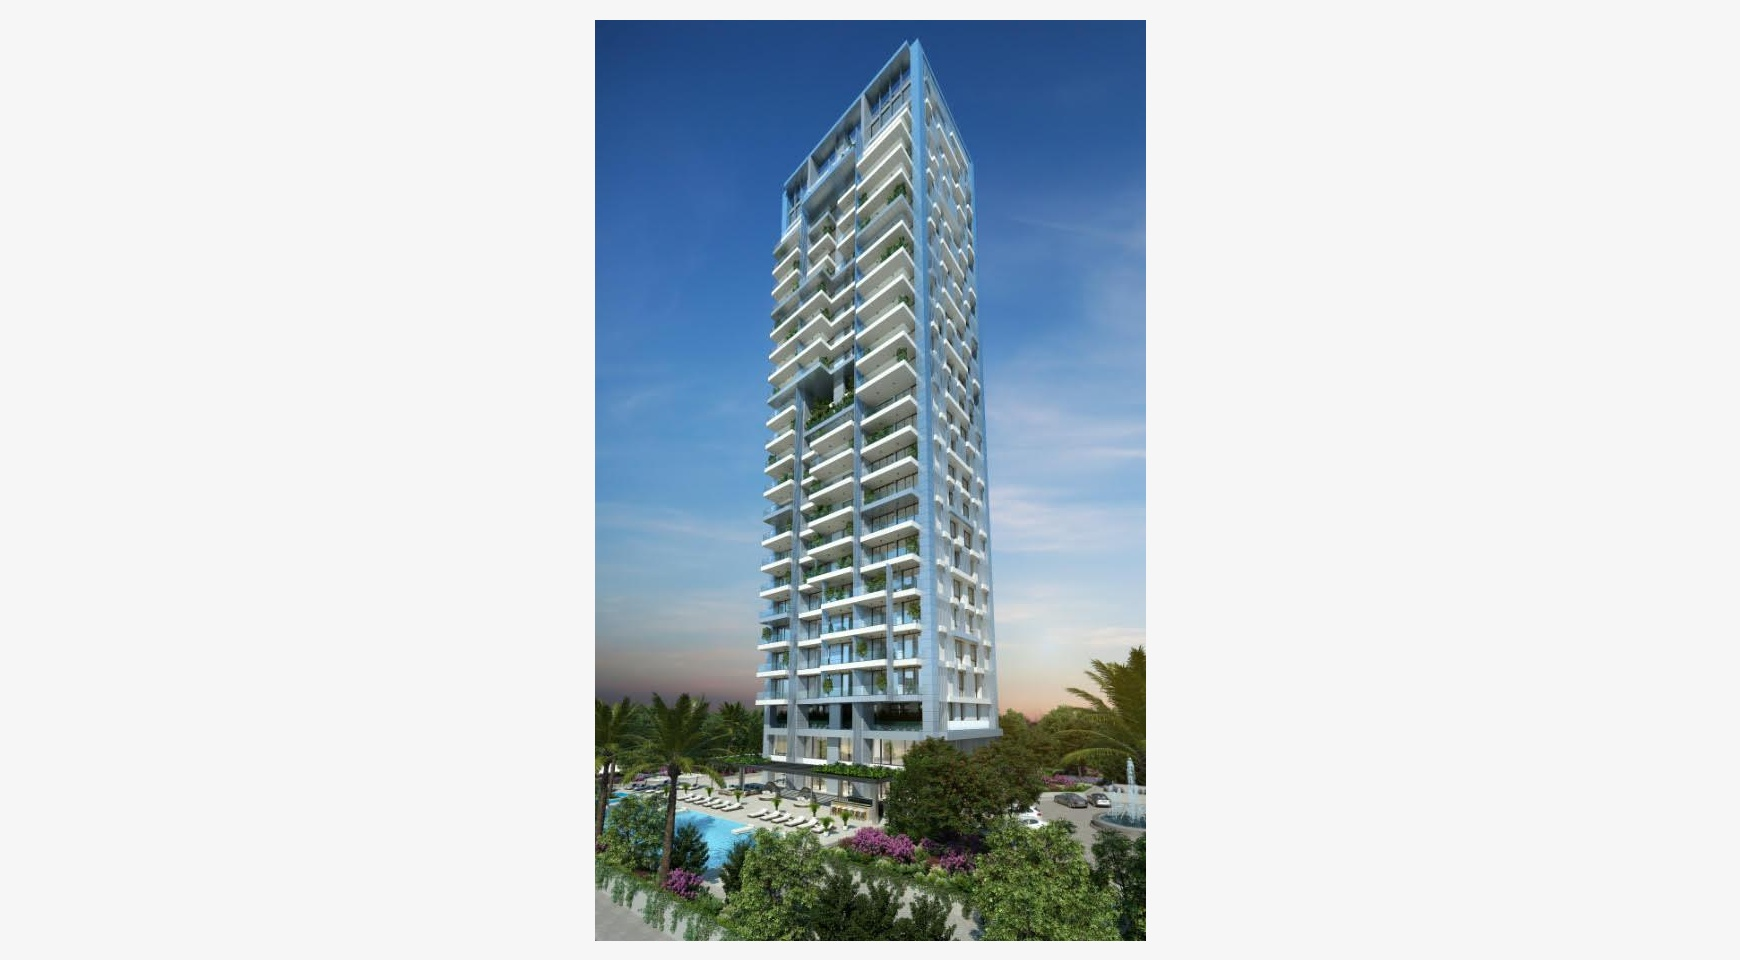 3 Bedroom Apartment with Sea Views in a Luxury Complex - 16